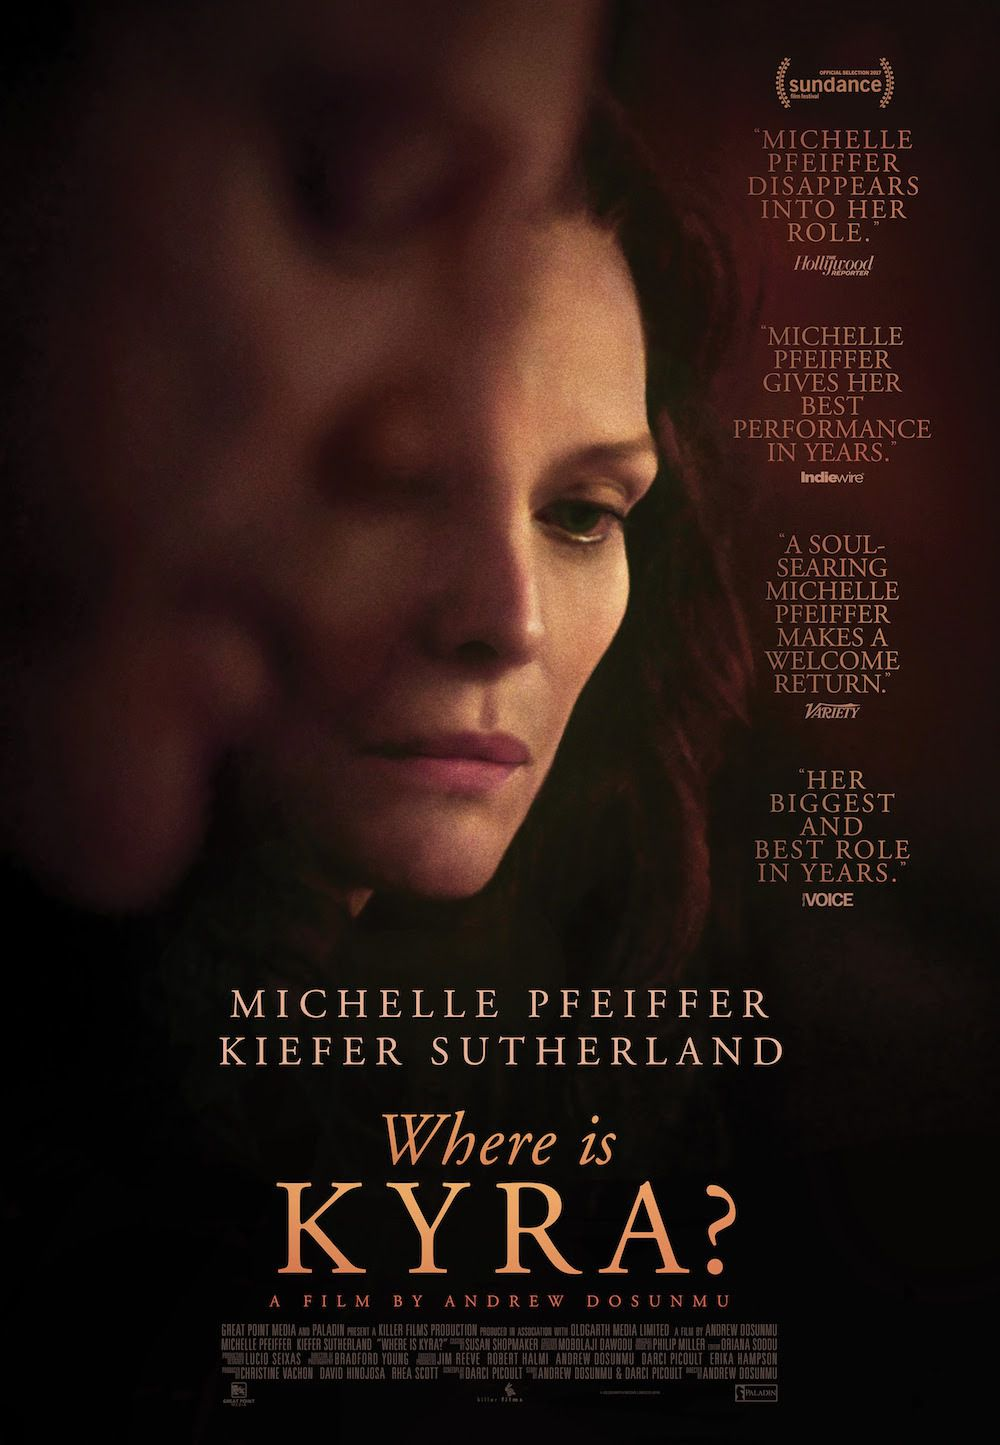 Where is Kyra (2018) - film poster